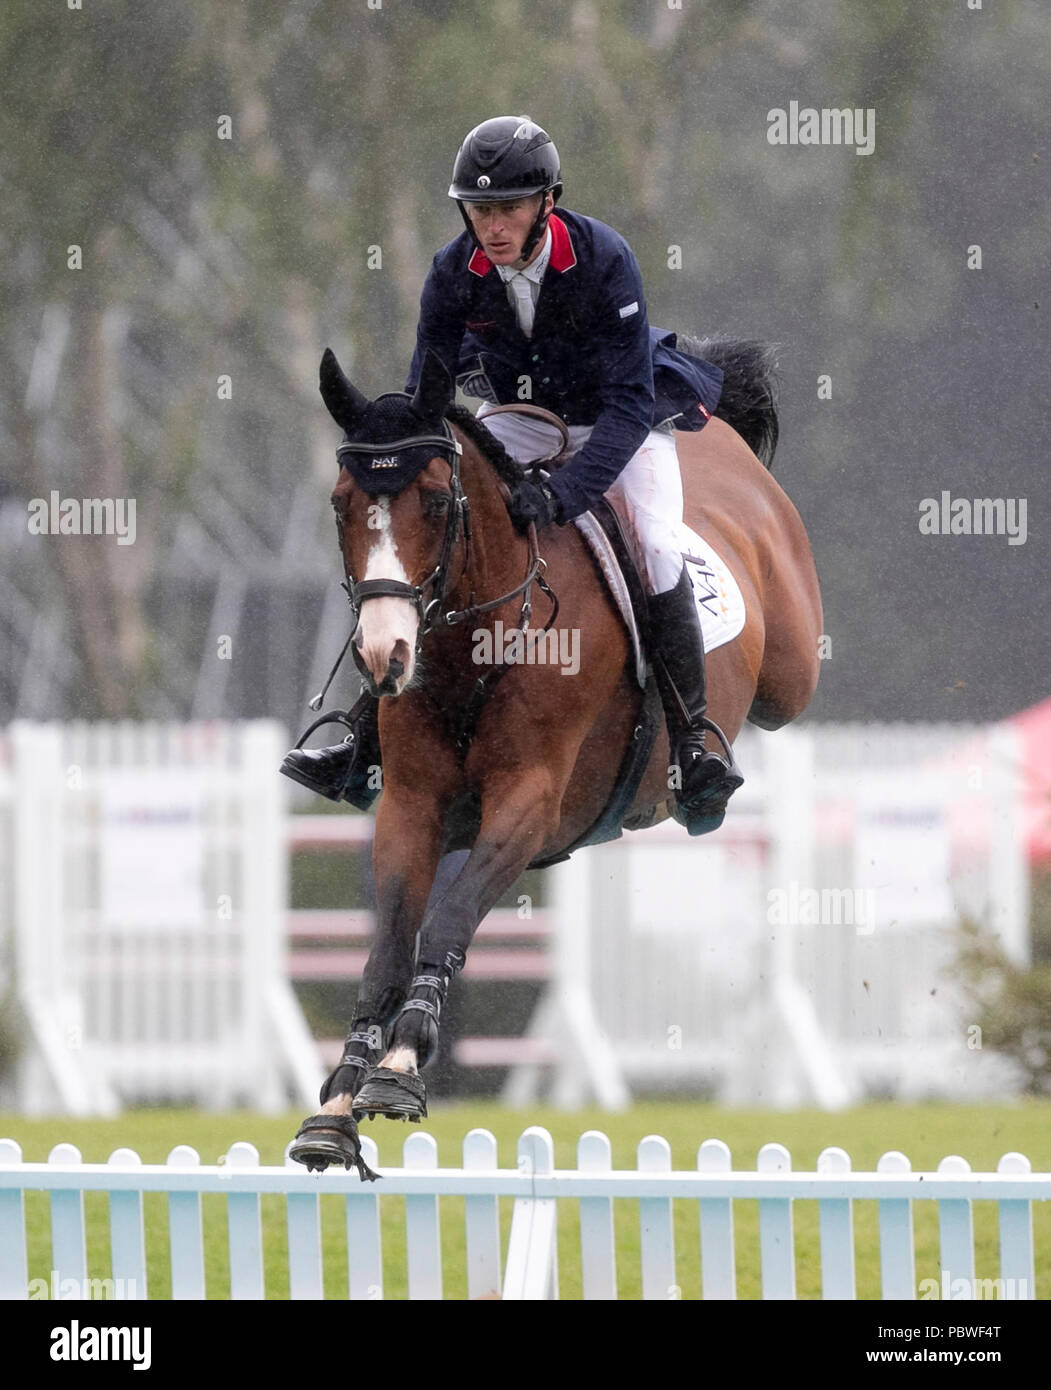 Hickstead(Britain. 30th July, 2018. William Whitaker of Britain competes during the Longines FEI Jumping Nations Cup in Hickstead, Britain on July 29, 2018. Credit: Han Yan/Xinhua/Alamy Live News Stock Photo